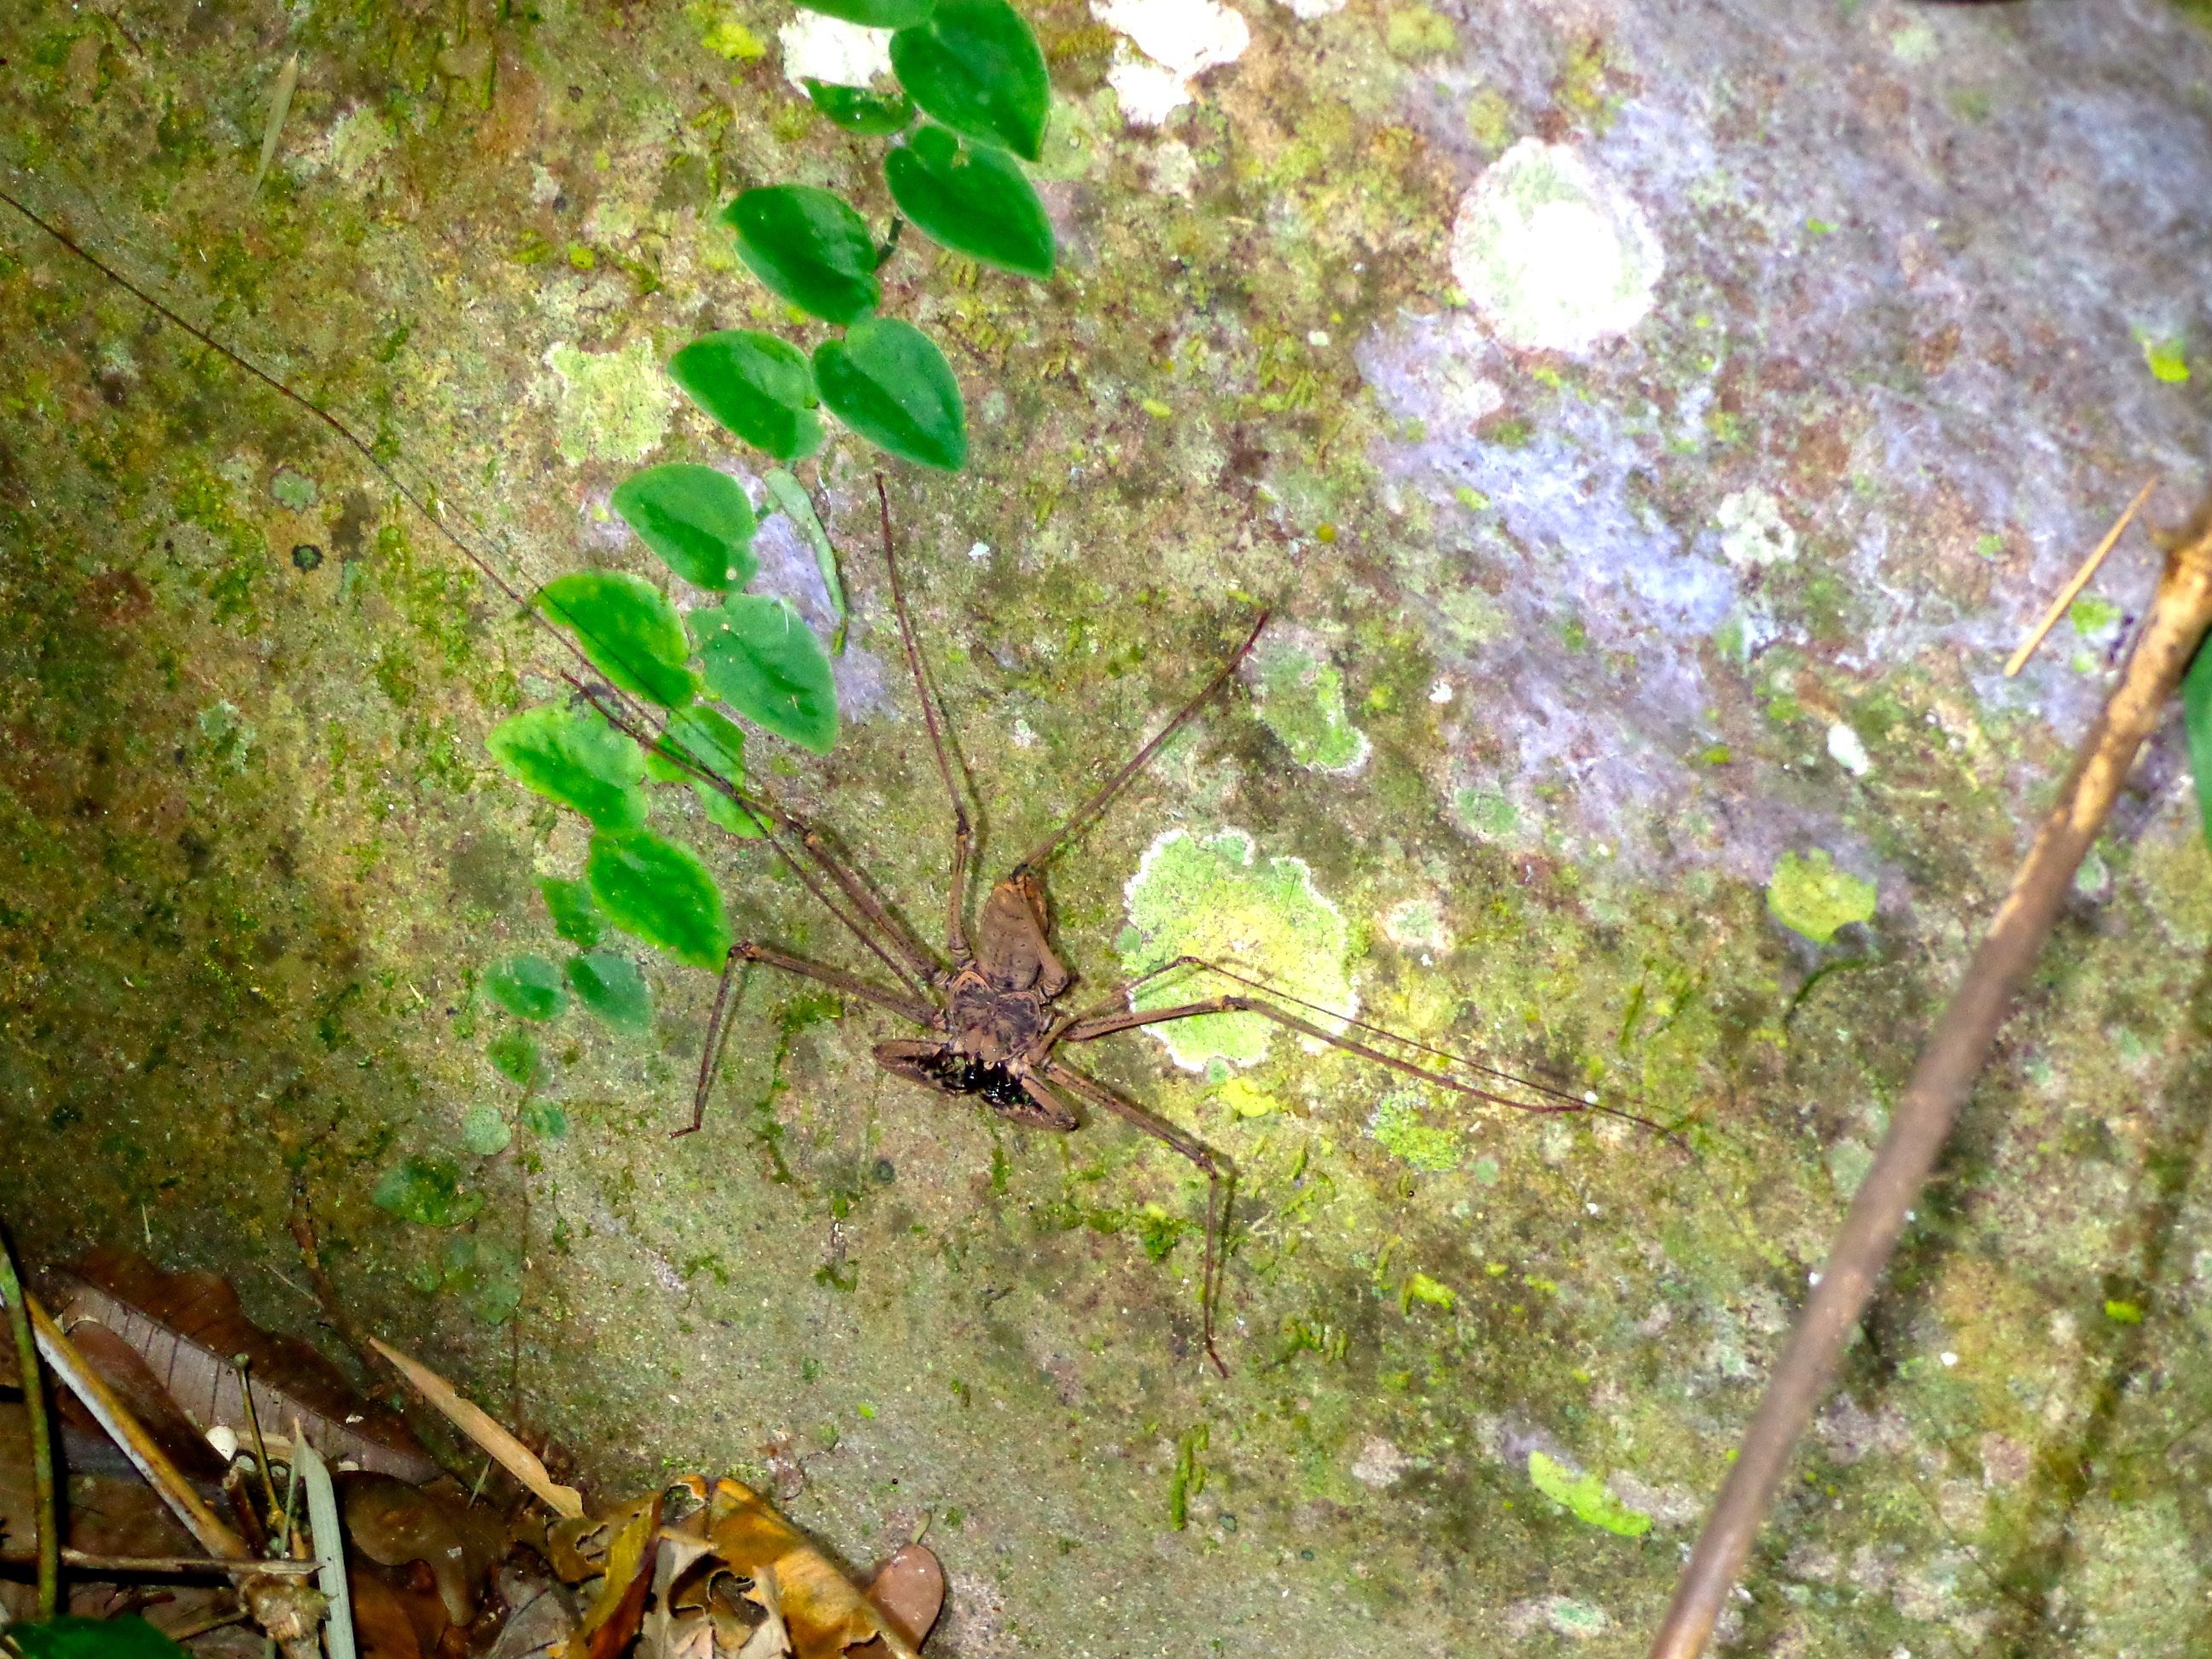 Sleeping outside in the jungle is cool until you find one of these terrifying monster creatures nearby